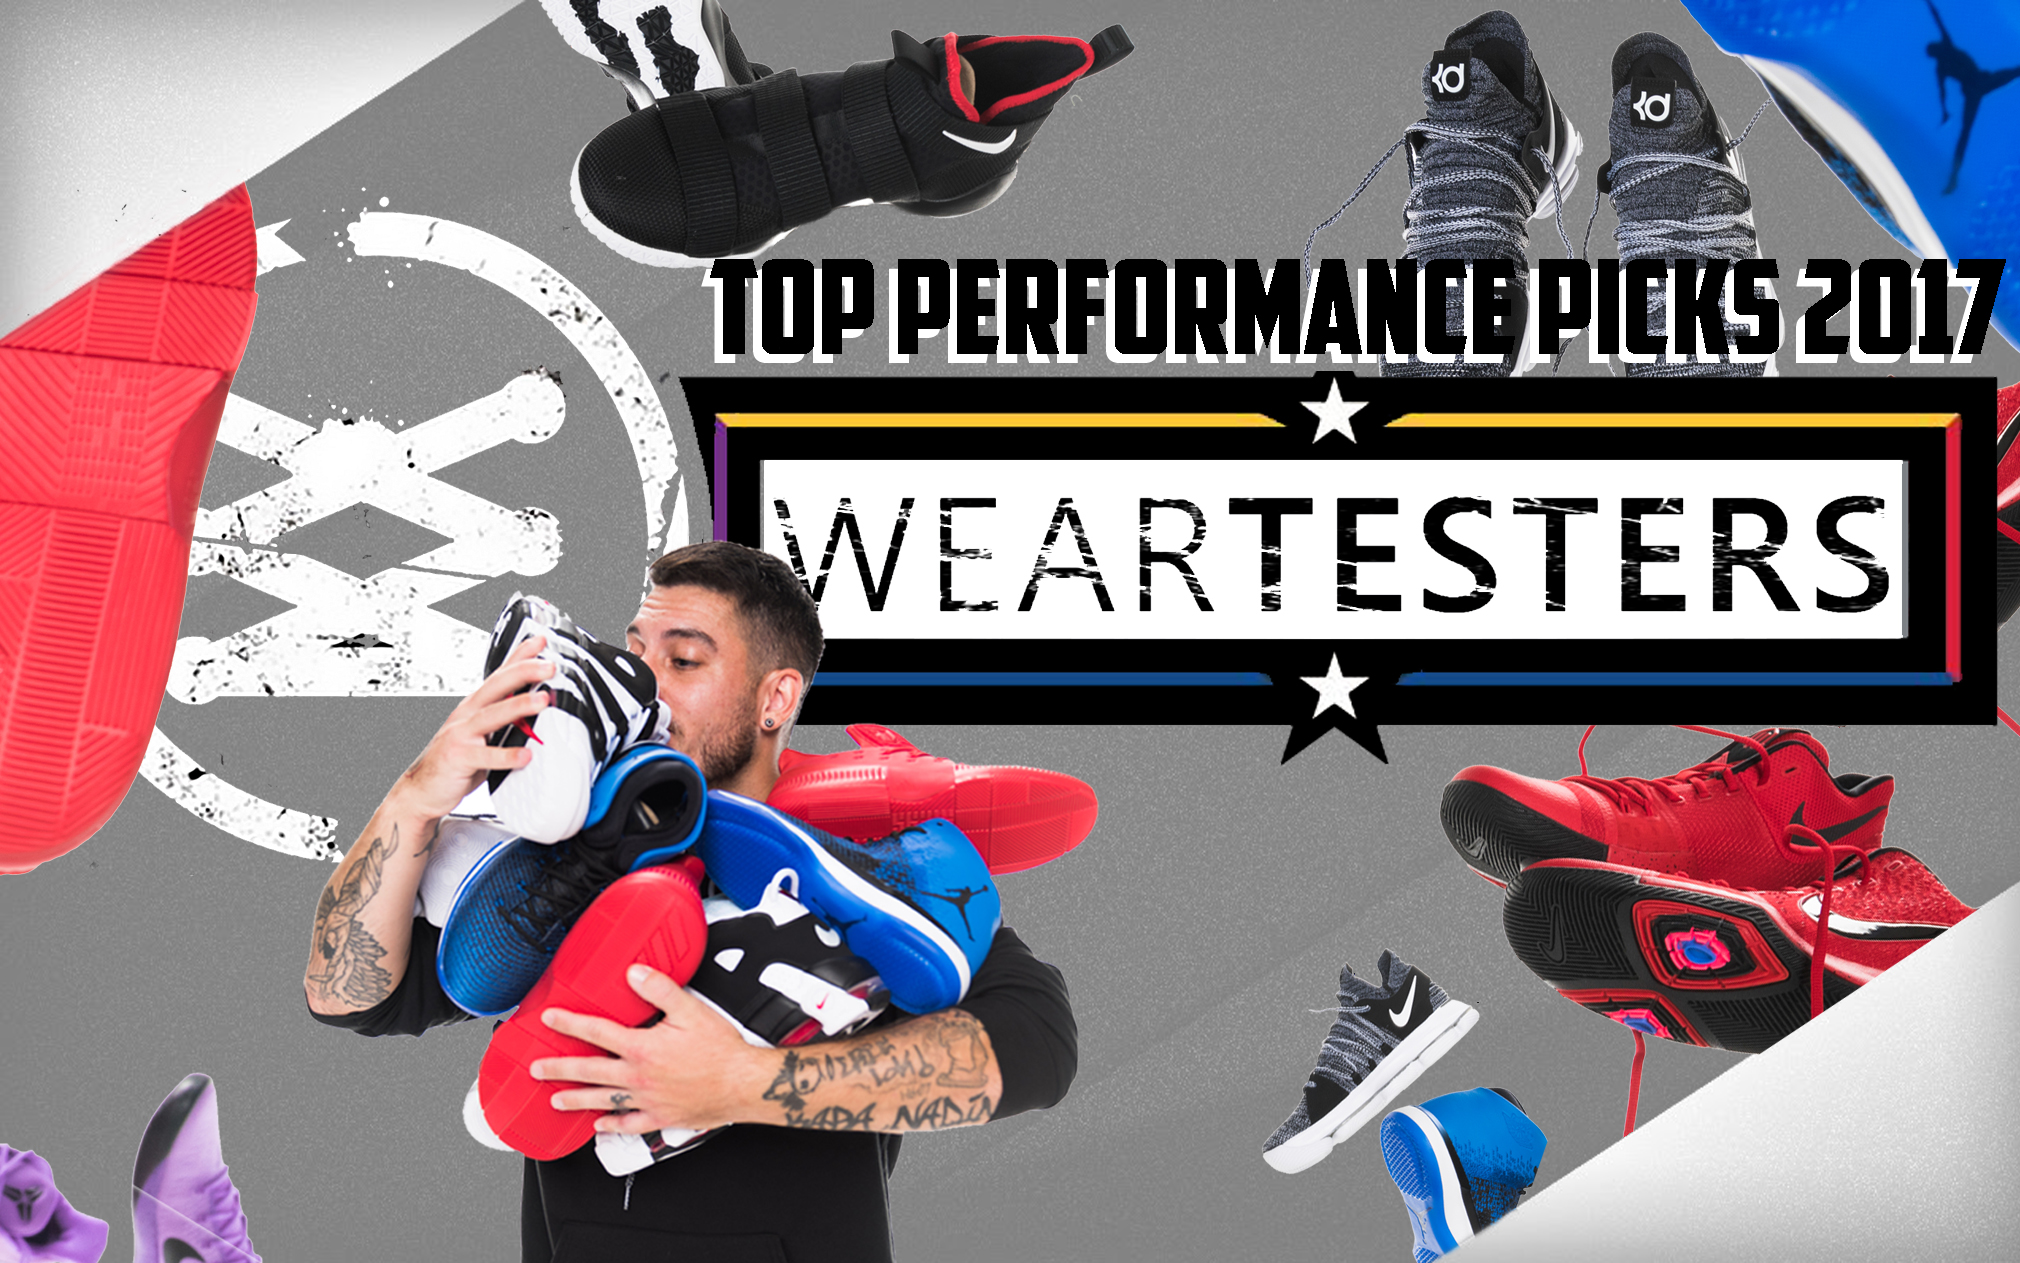 d1079db03f81 Nightwing2303  The Best Basketball Shoes of 2017 - WearTesters